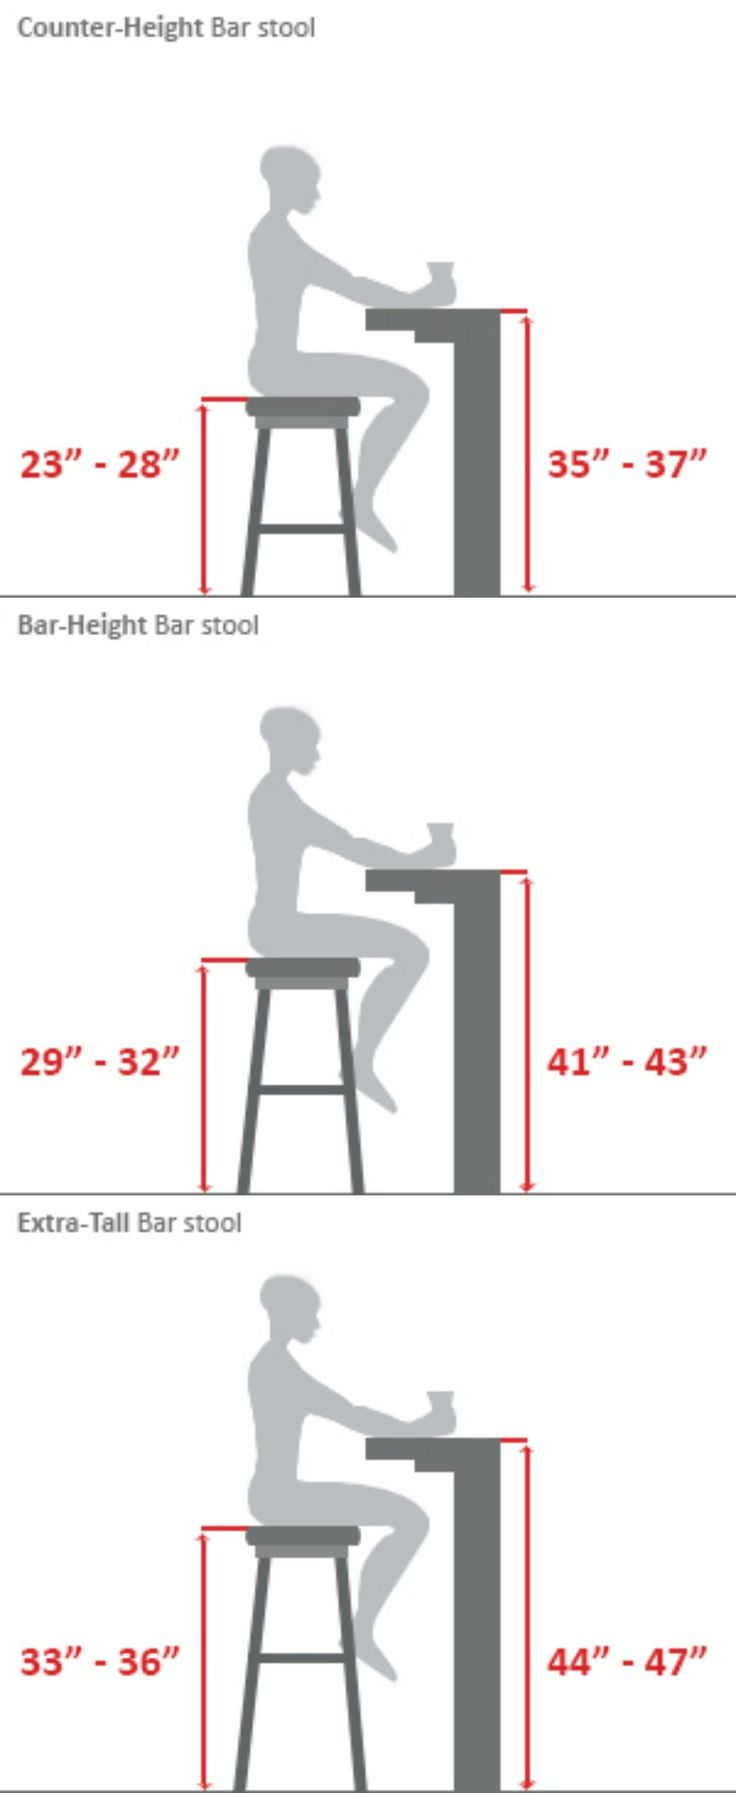 Bar stool sizing guide.